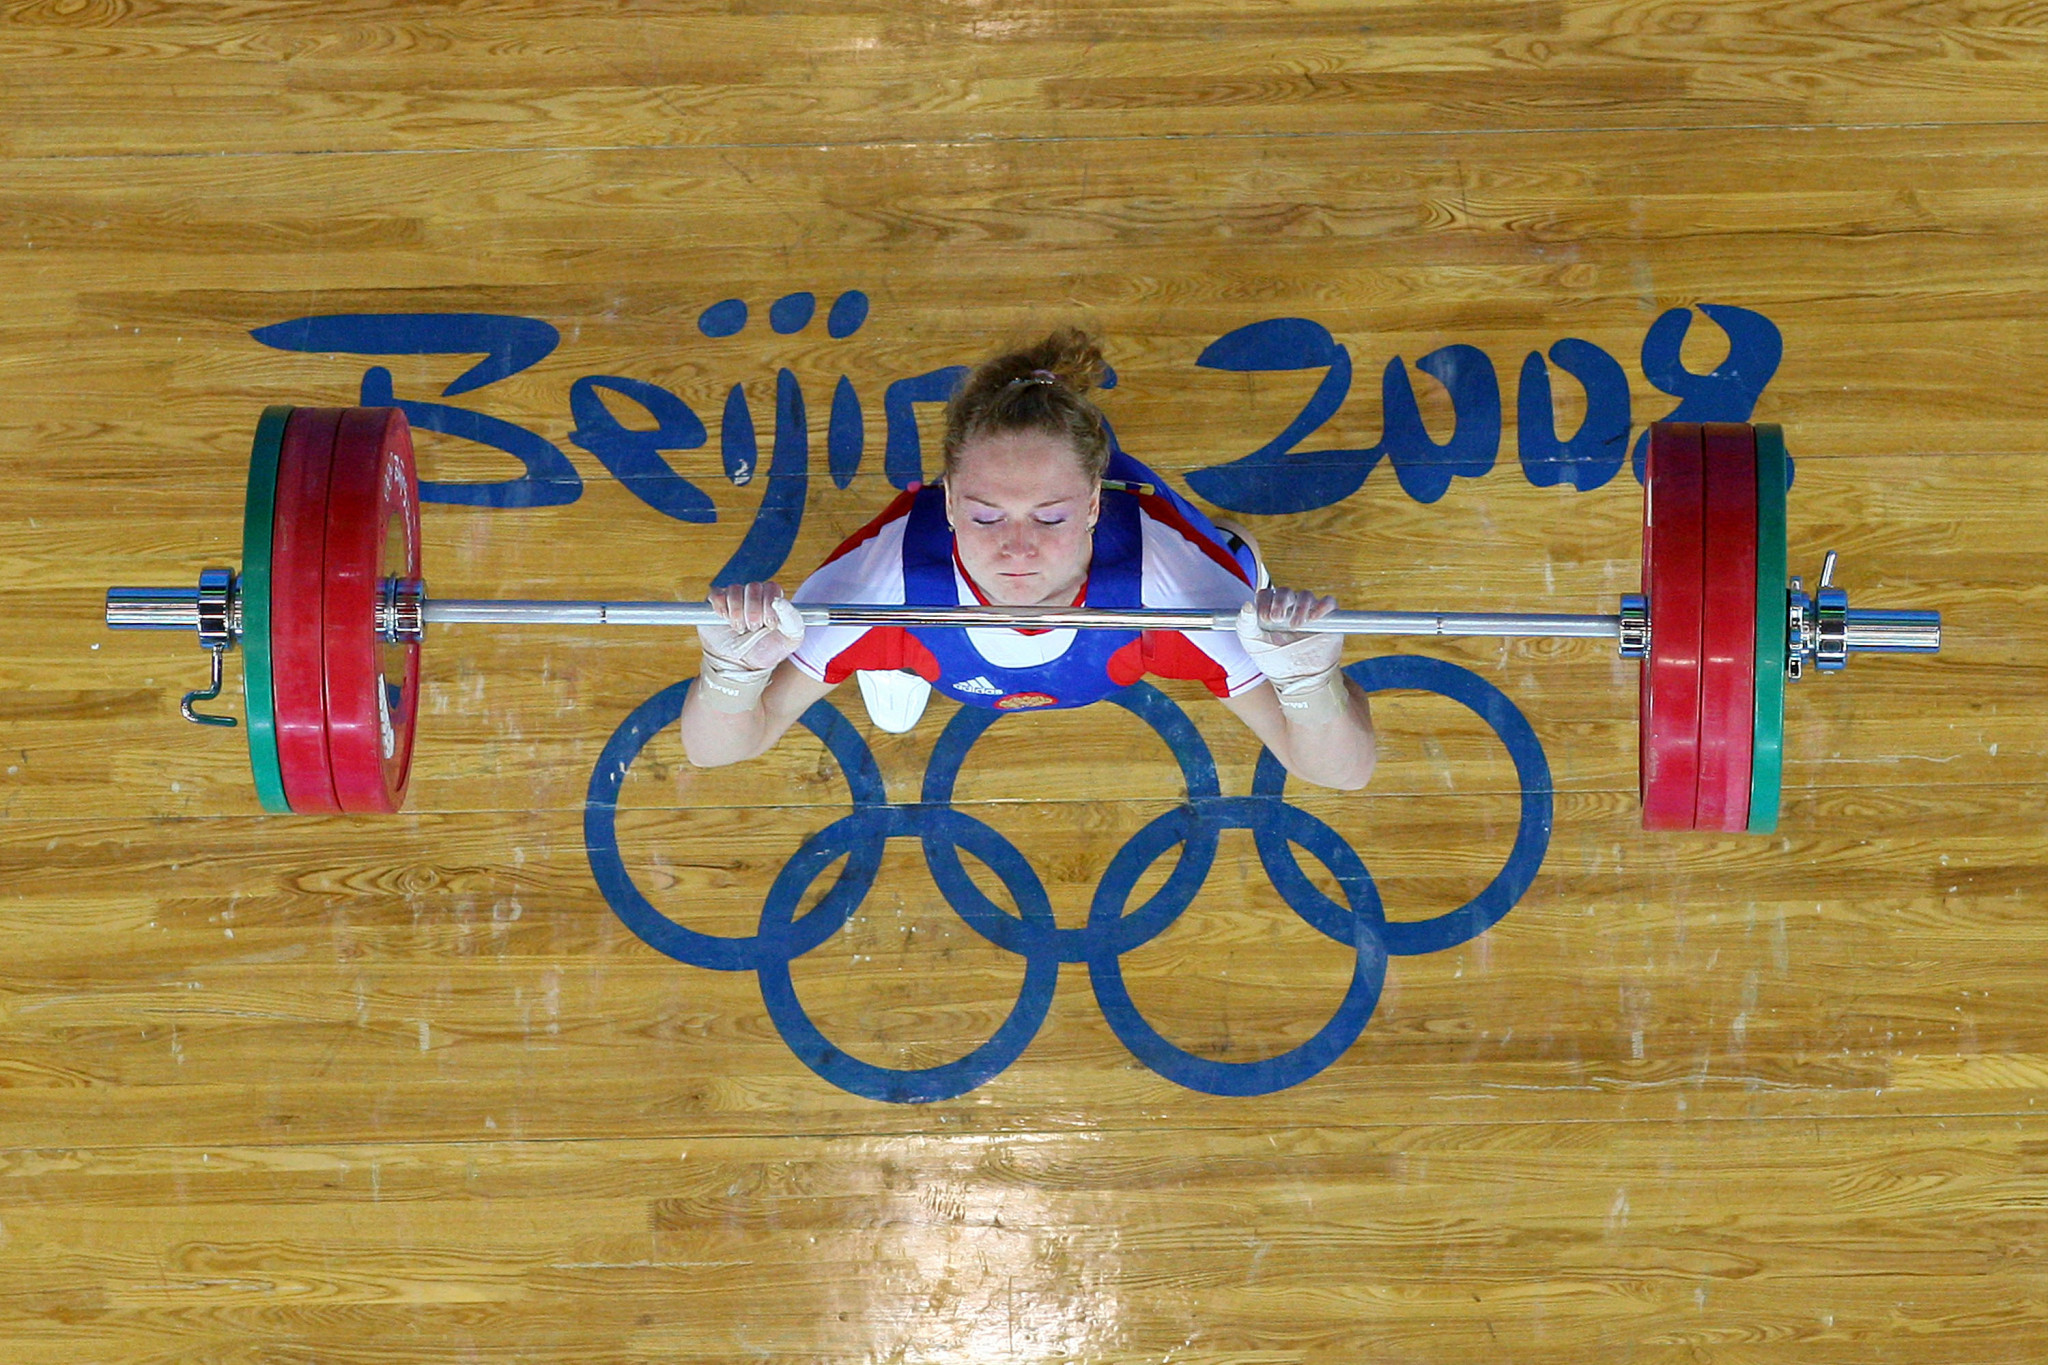 Oksana Slivenko is Russia's last Olympic weightlifting champion having won a gold medal at Beijing 2008, but was given a two-year doping ban in 2018 ©Getty Images